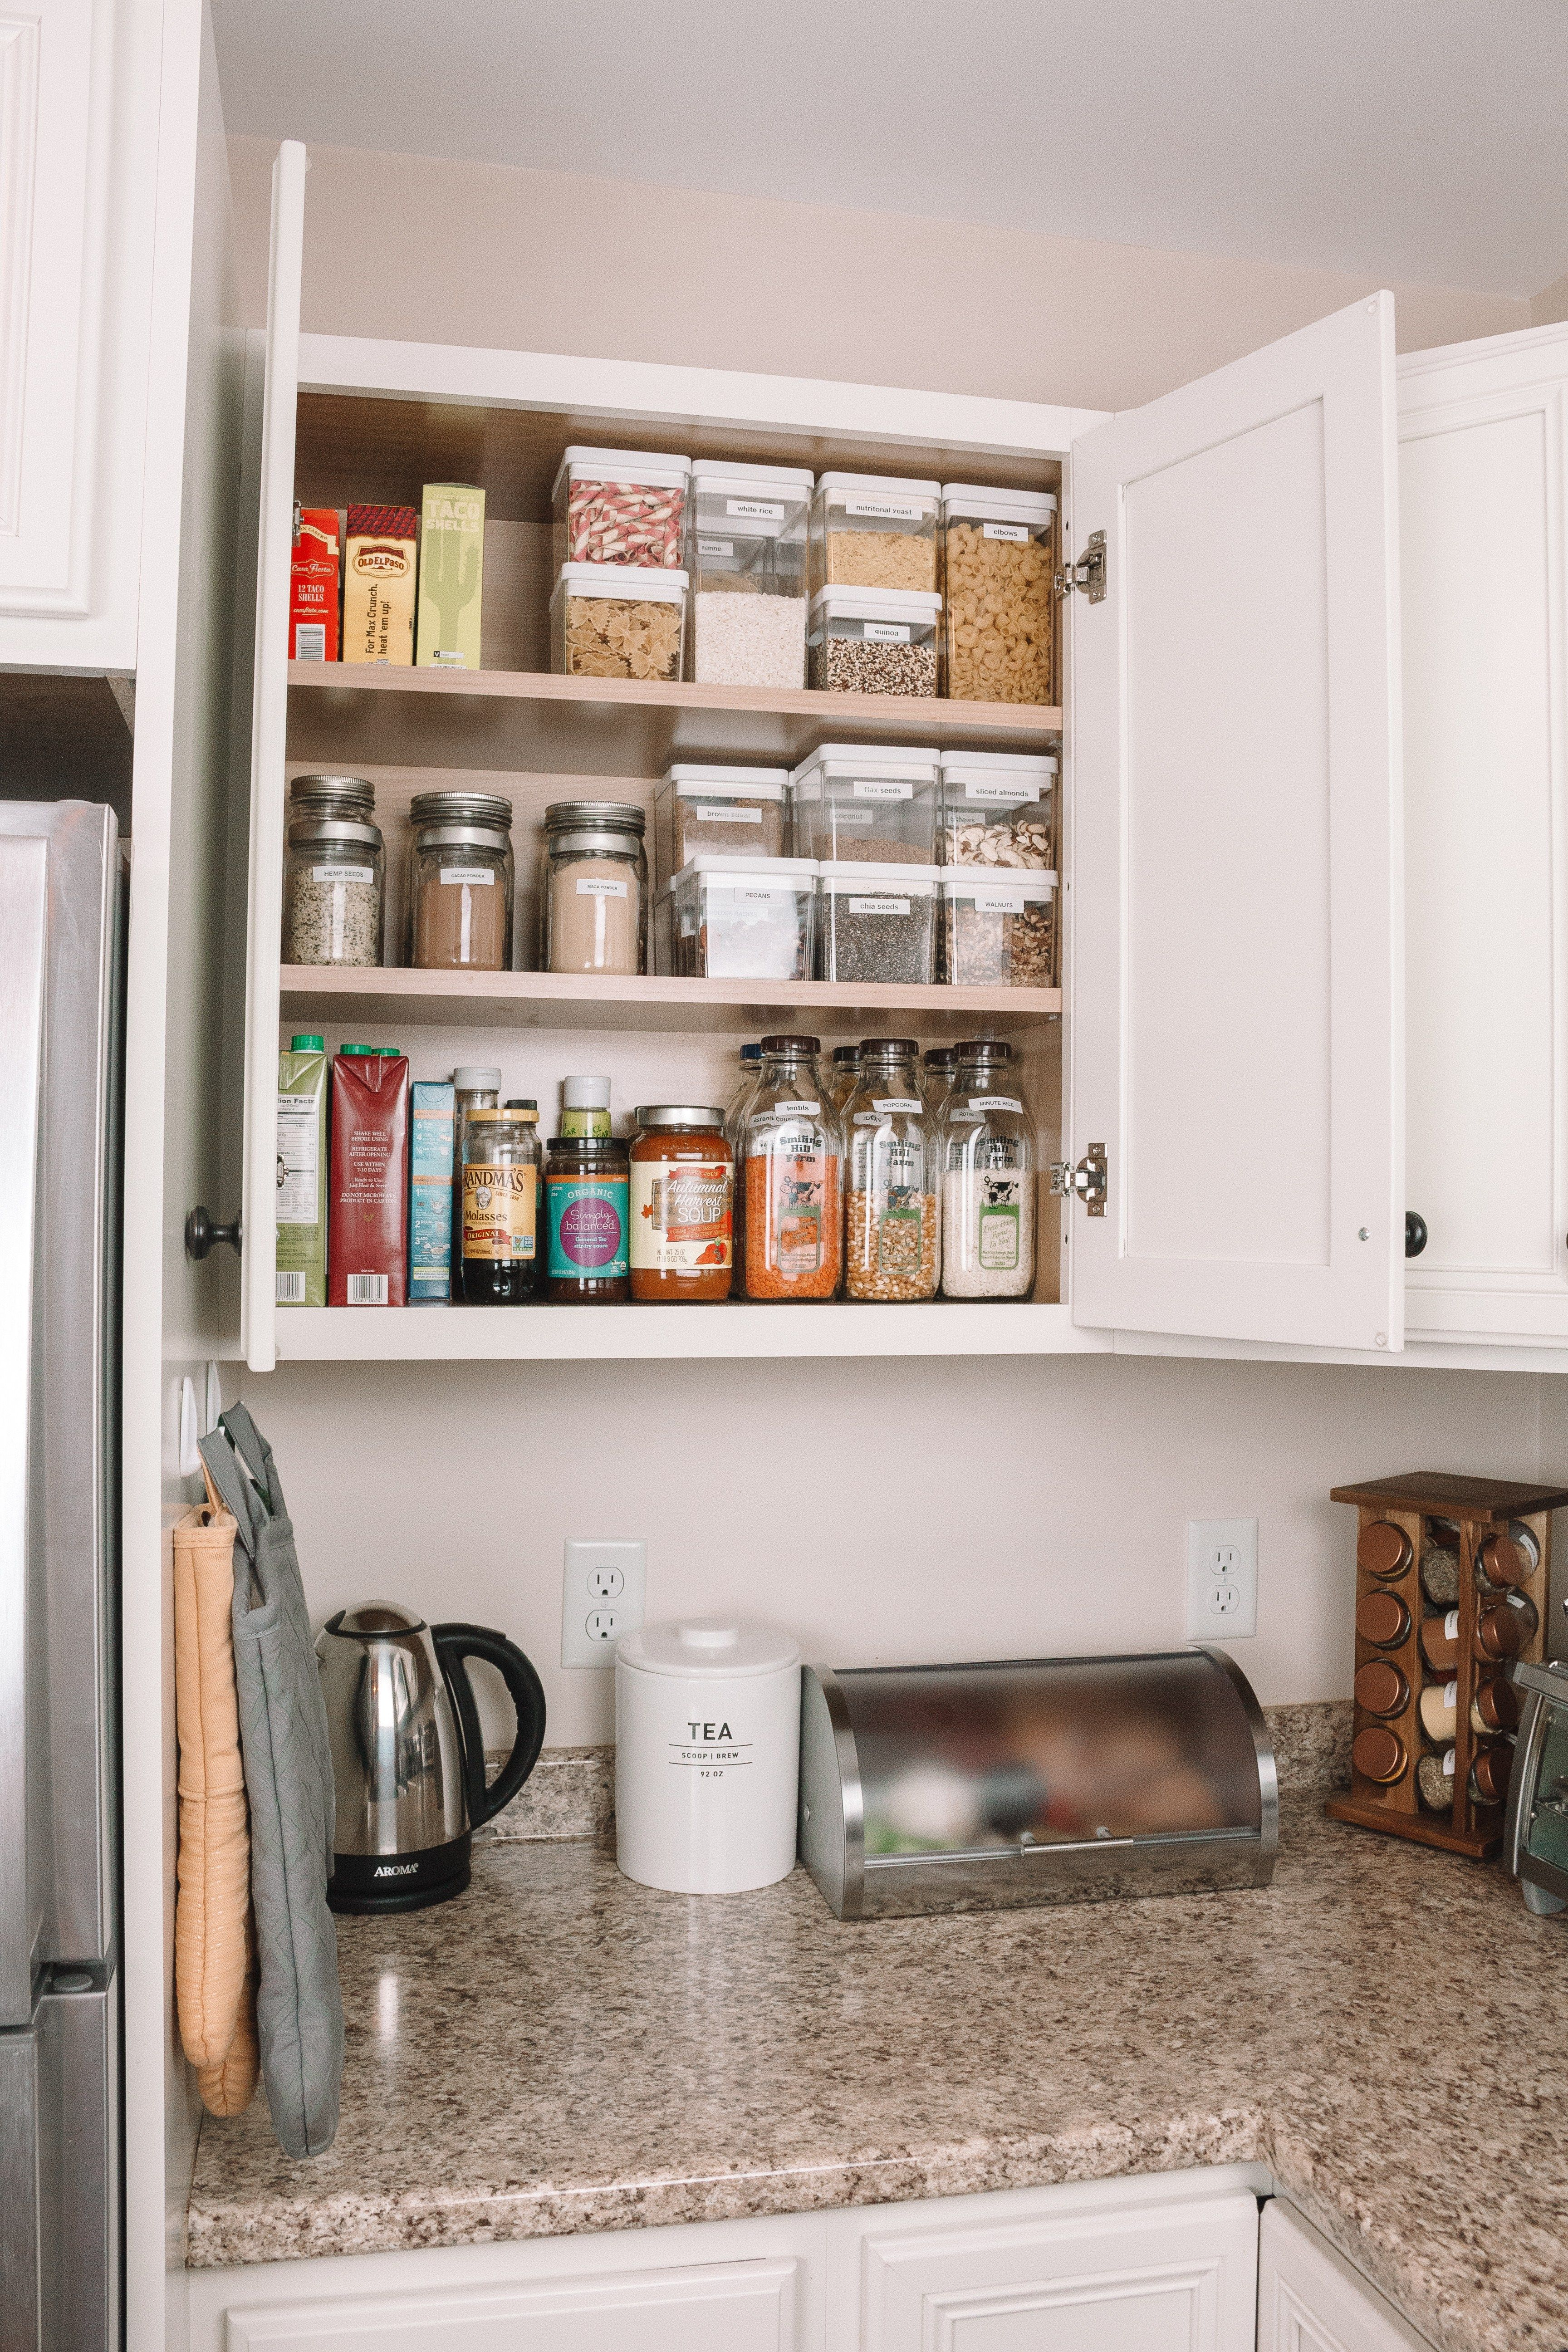 How To Organize Your Pantry In An Apartment Hey It S Camille Grey Apartment Kitchen Organization Apartment Pantry Small Apartment Kitchen